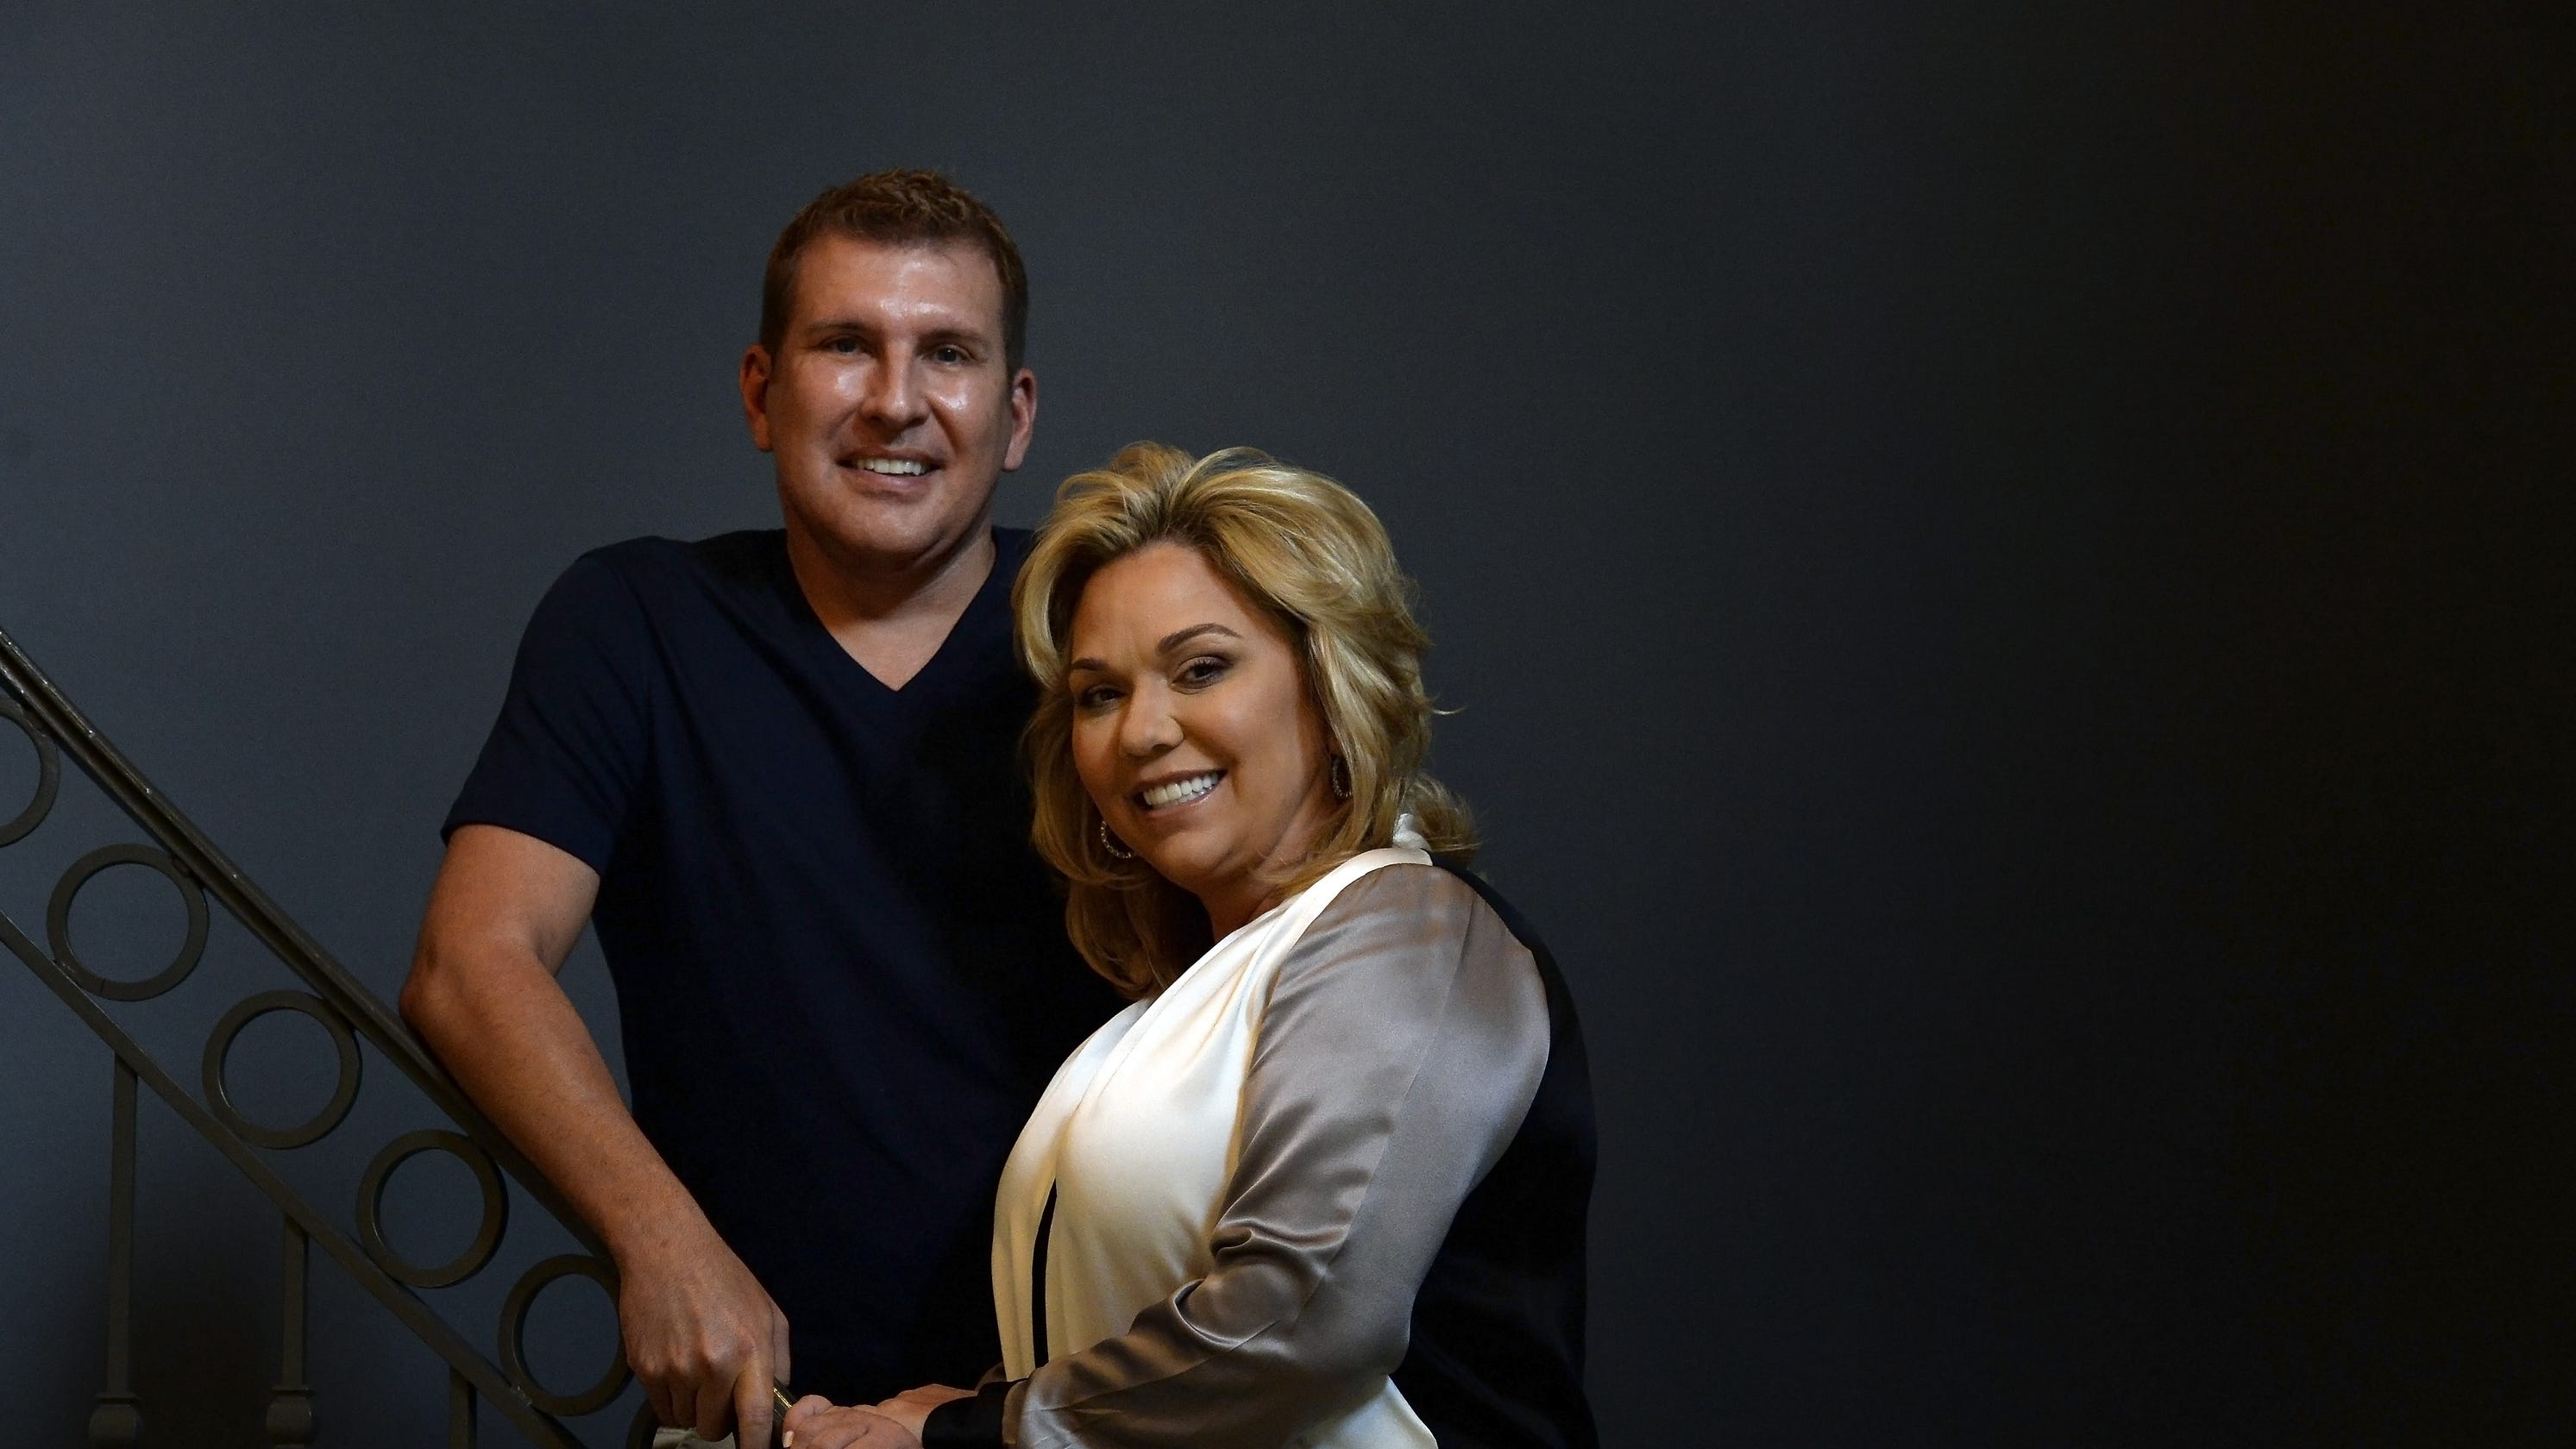 Reality star Westminster SC's Todd Chrisley faces tax